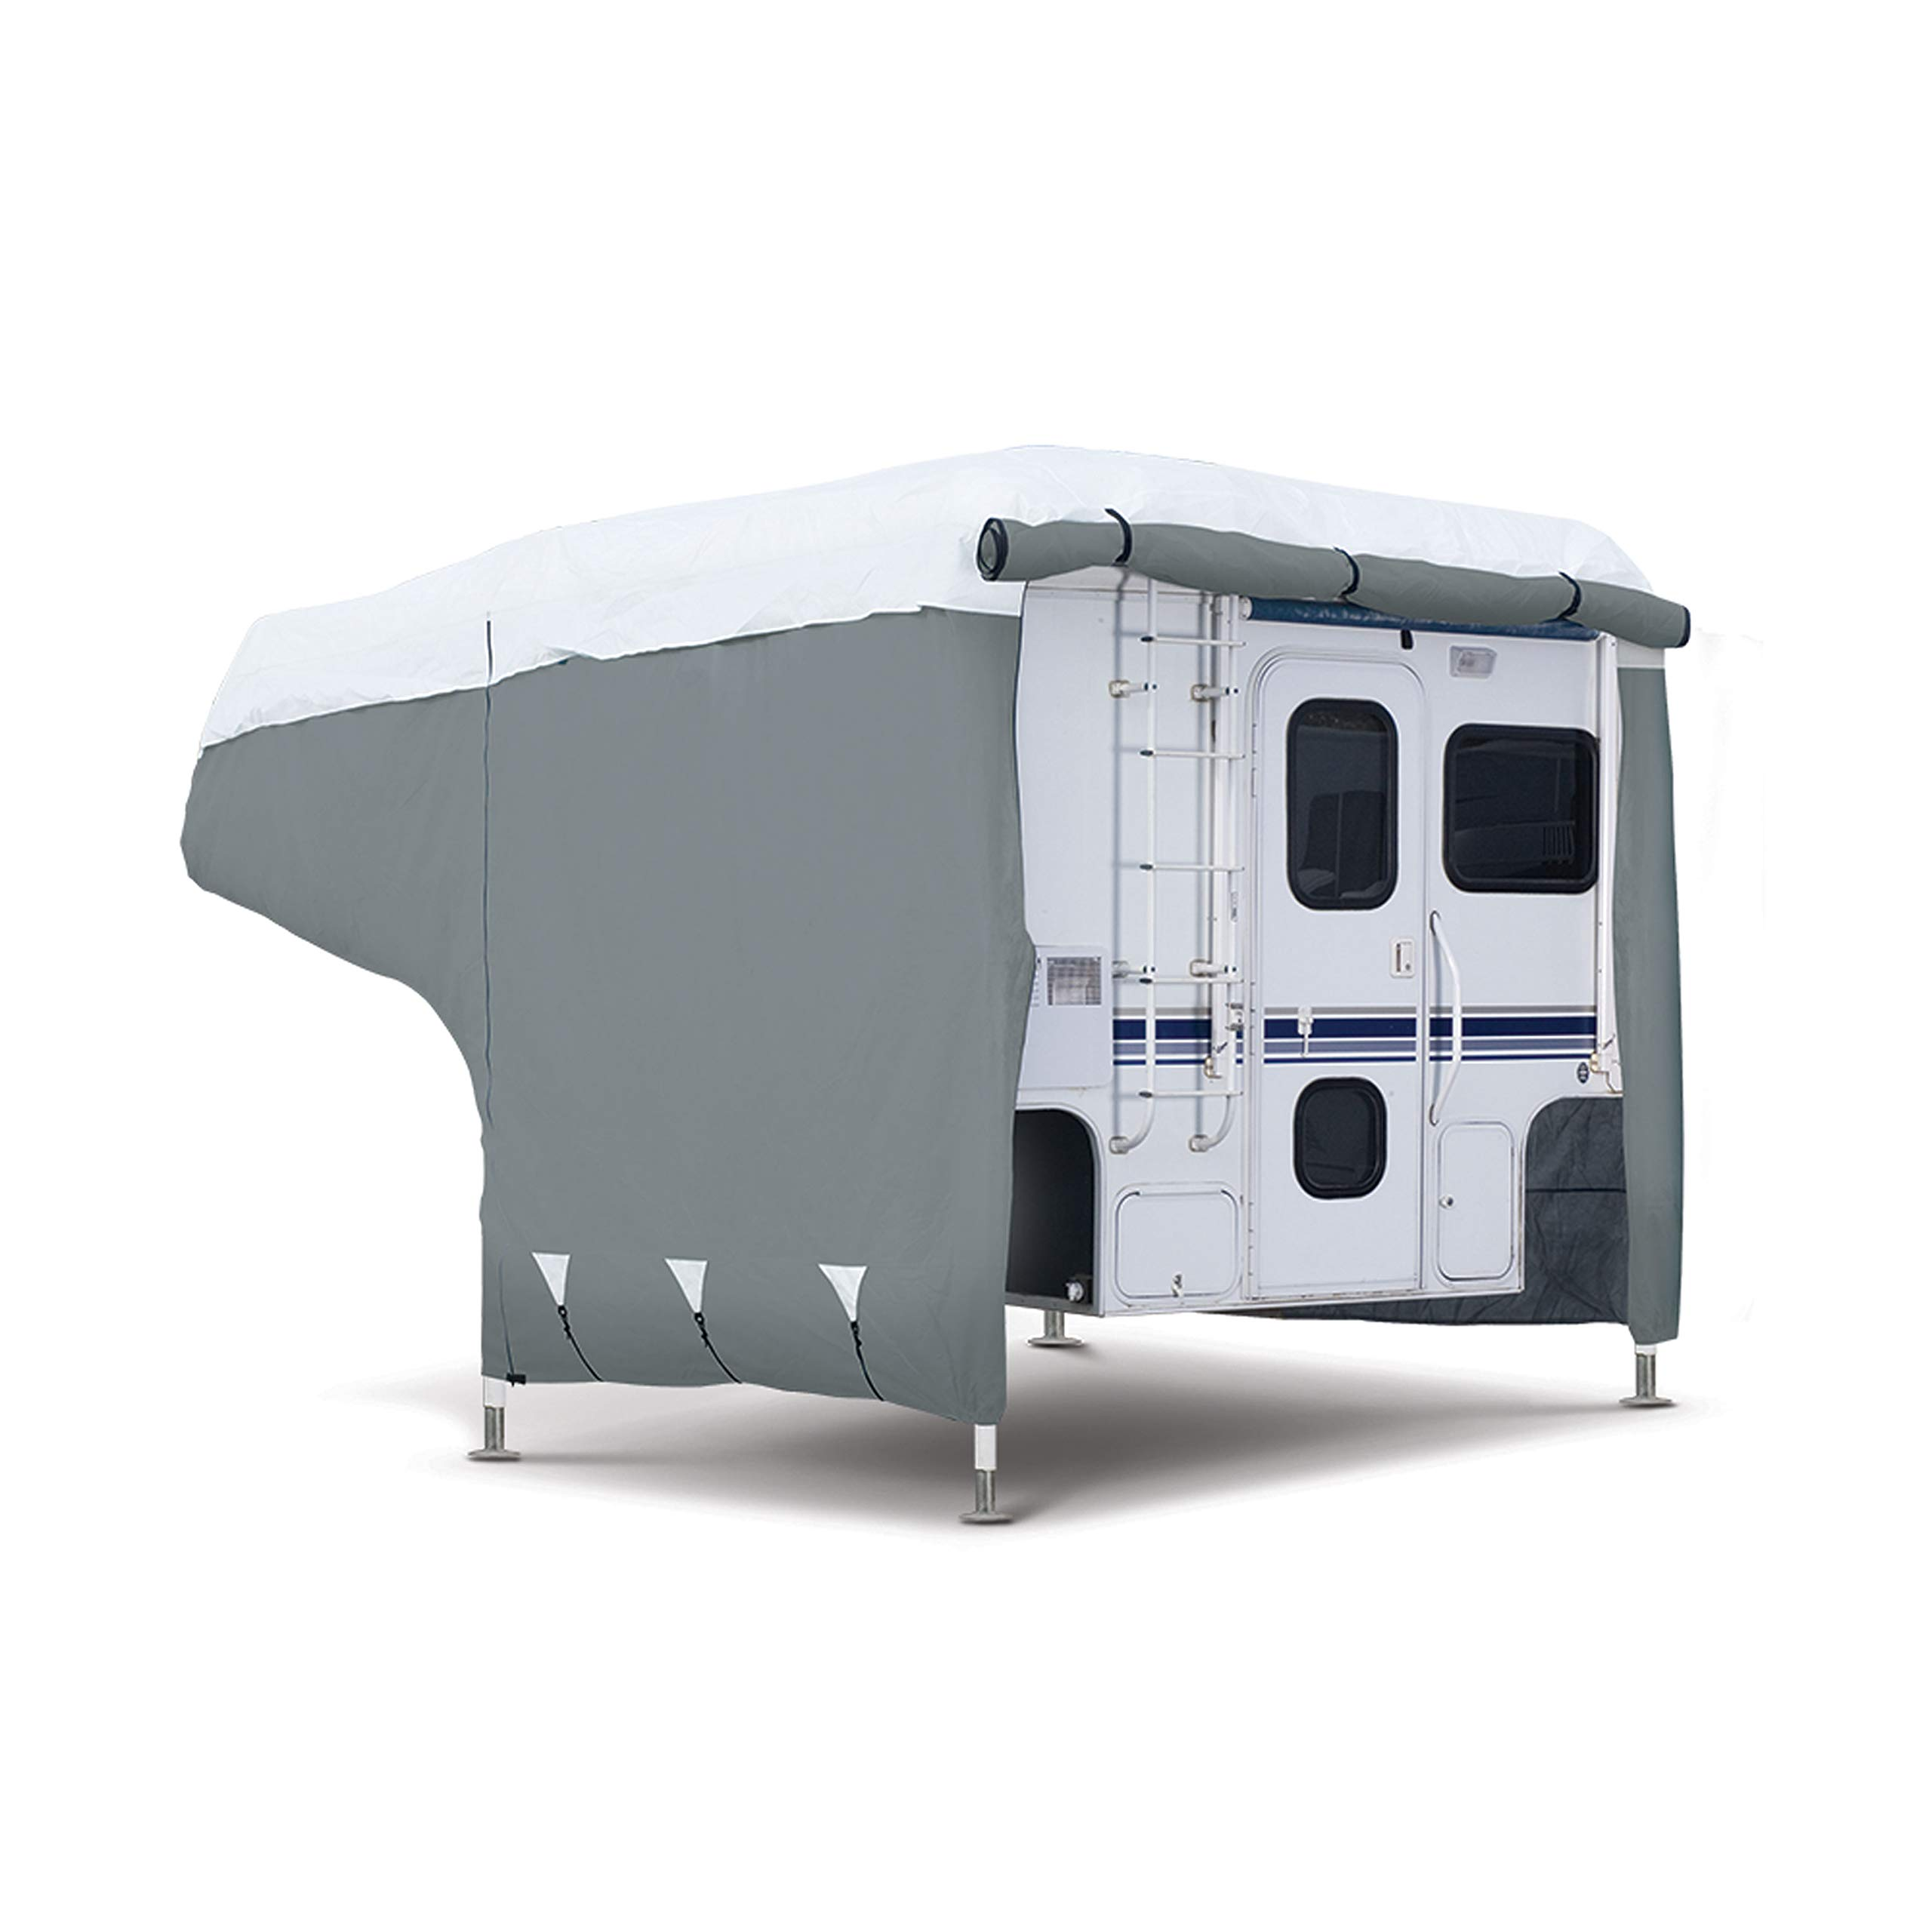 Classic Accessories PolyPro 3 RV Cover For 6-8' Campers Truck Camper Cover by Classic Accessories (Image #1)